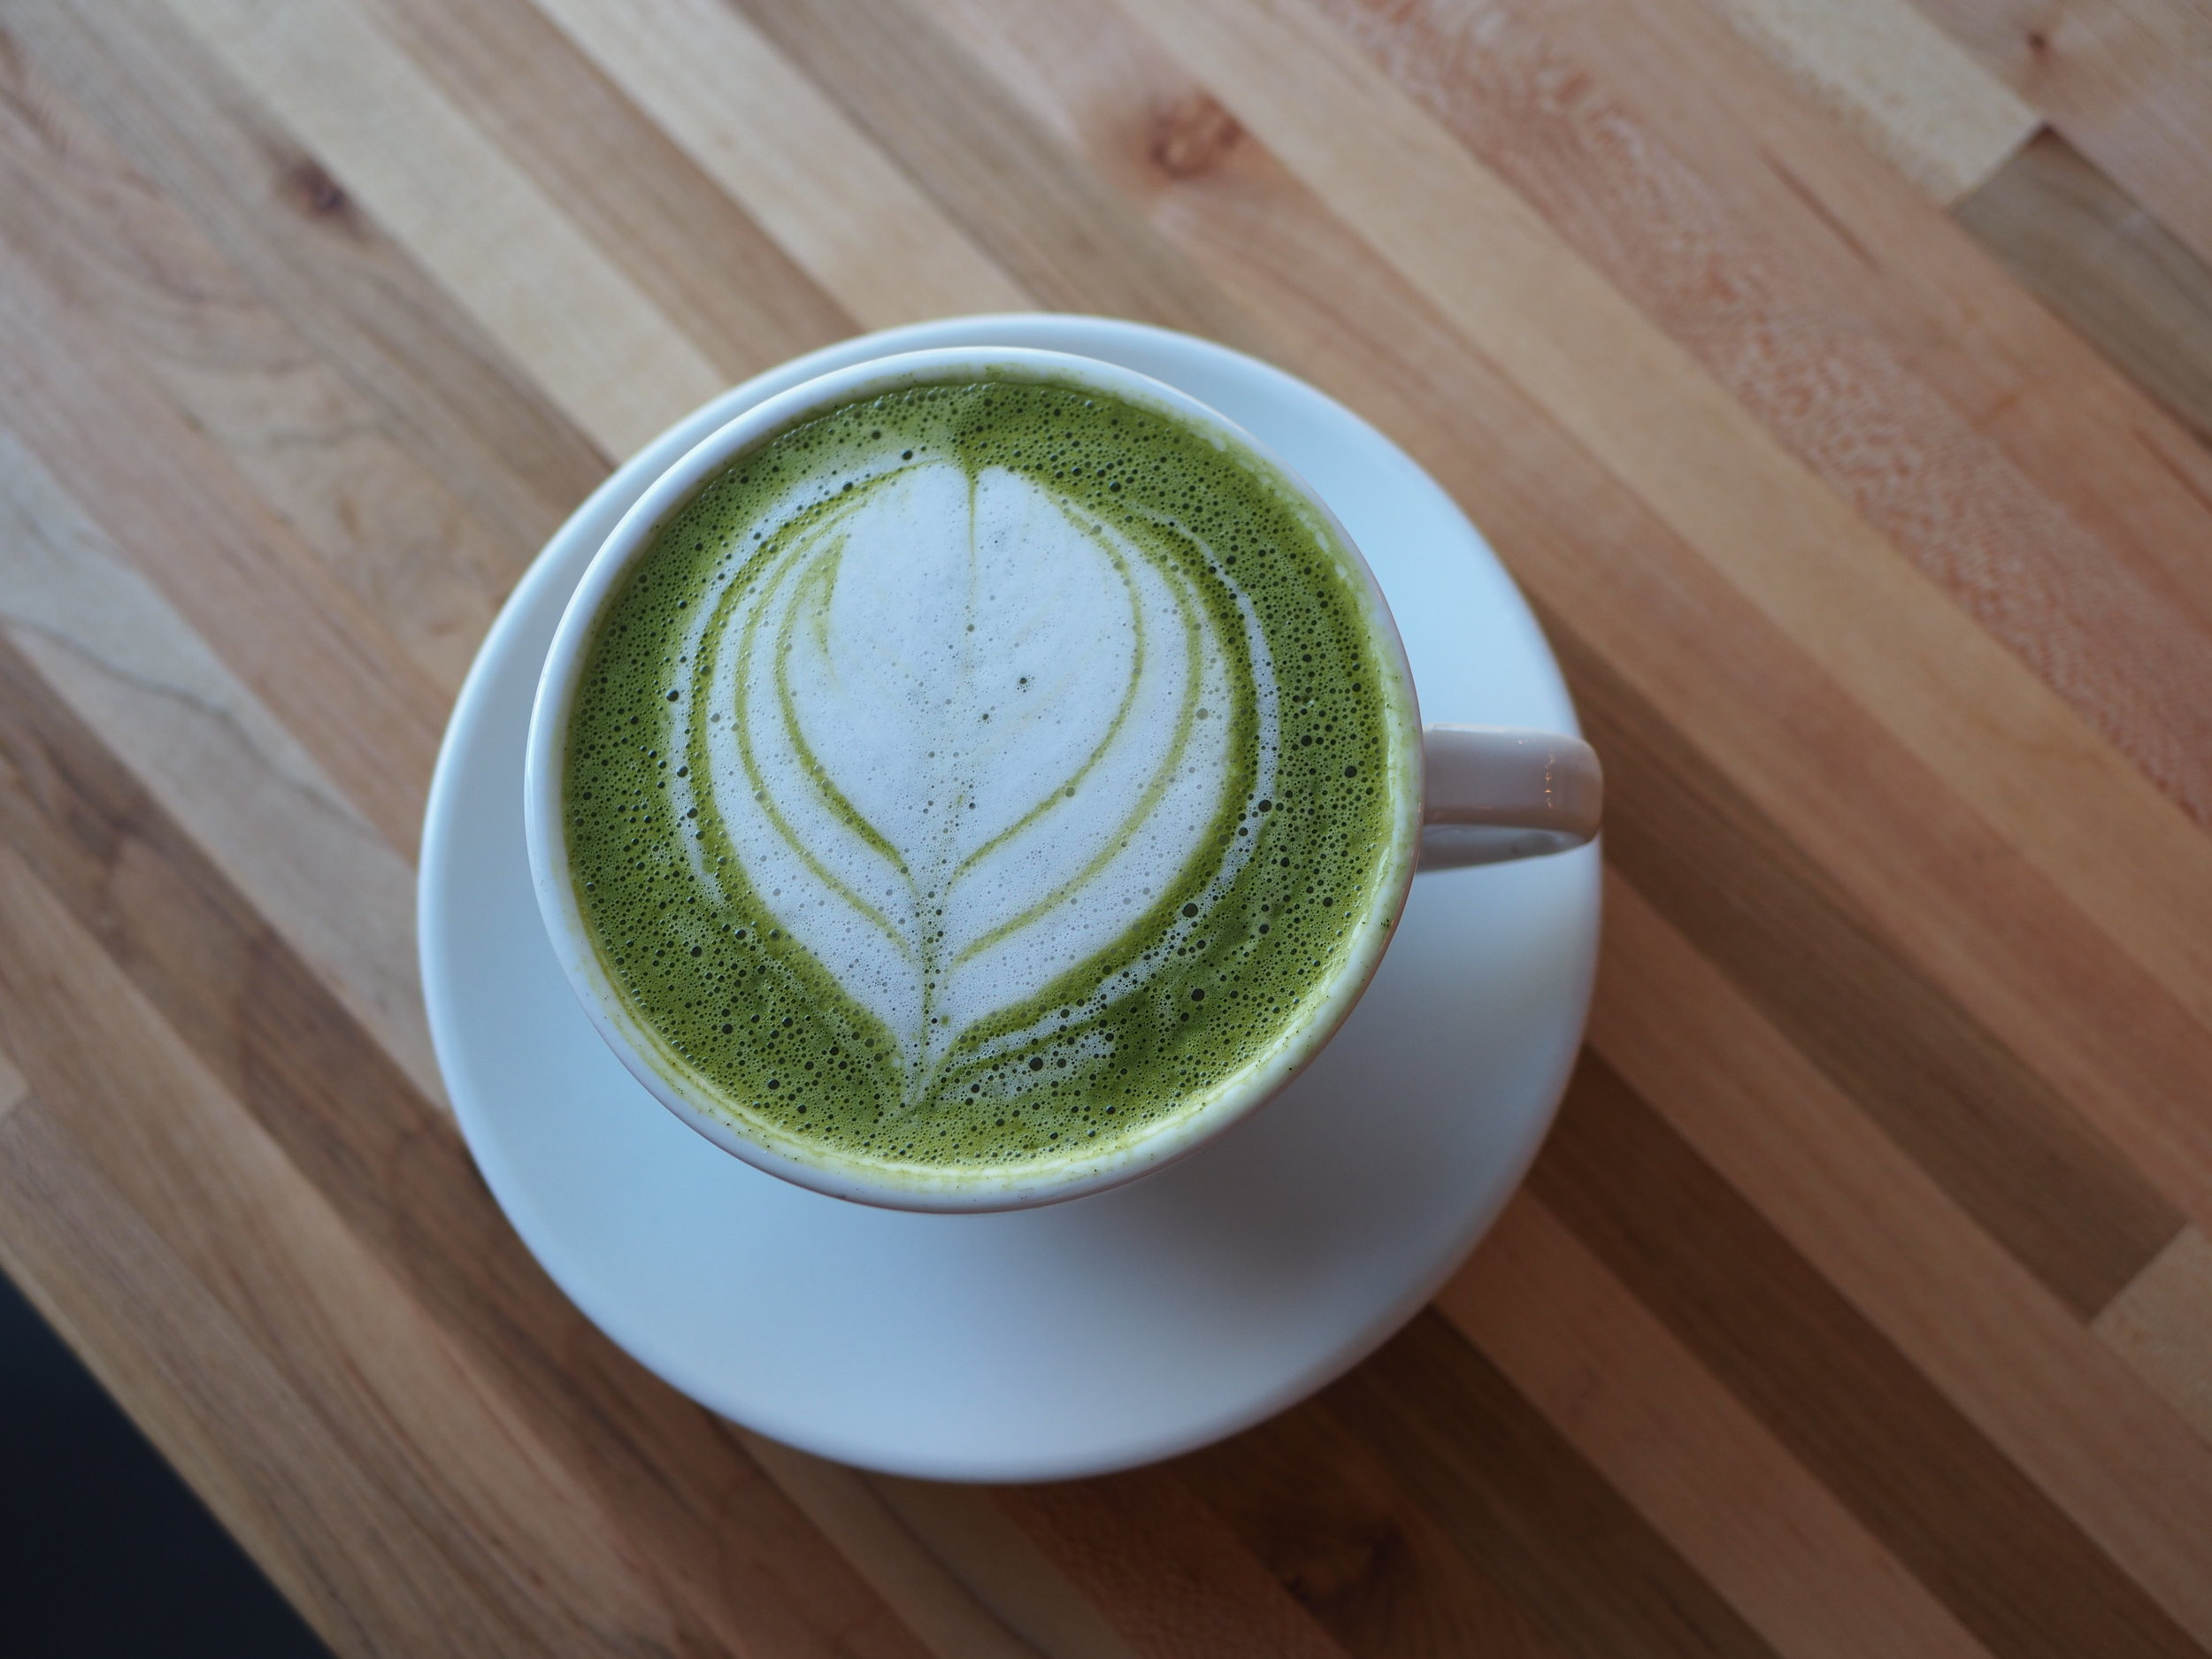 Matcha is filled with antioxidants, increases memory levels, and fortifies the immune system.